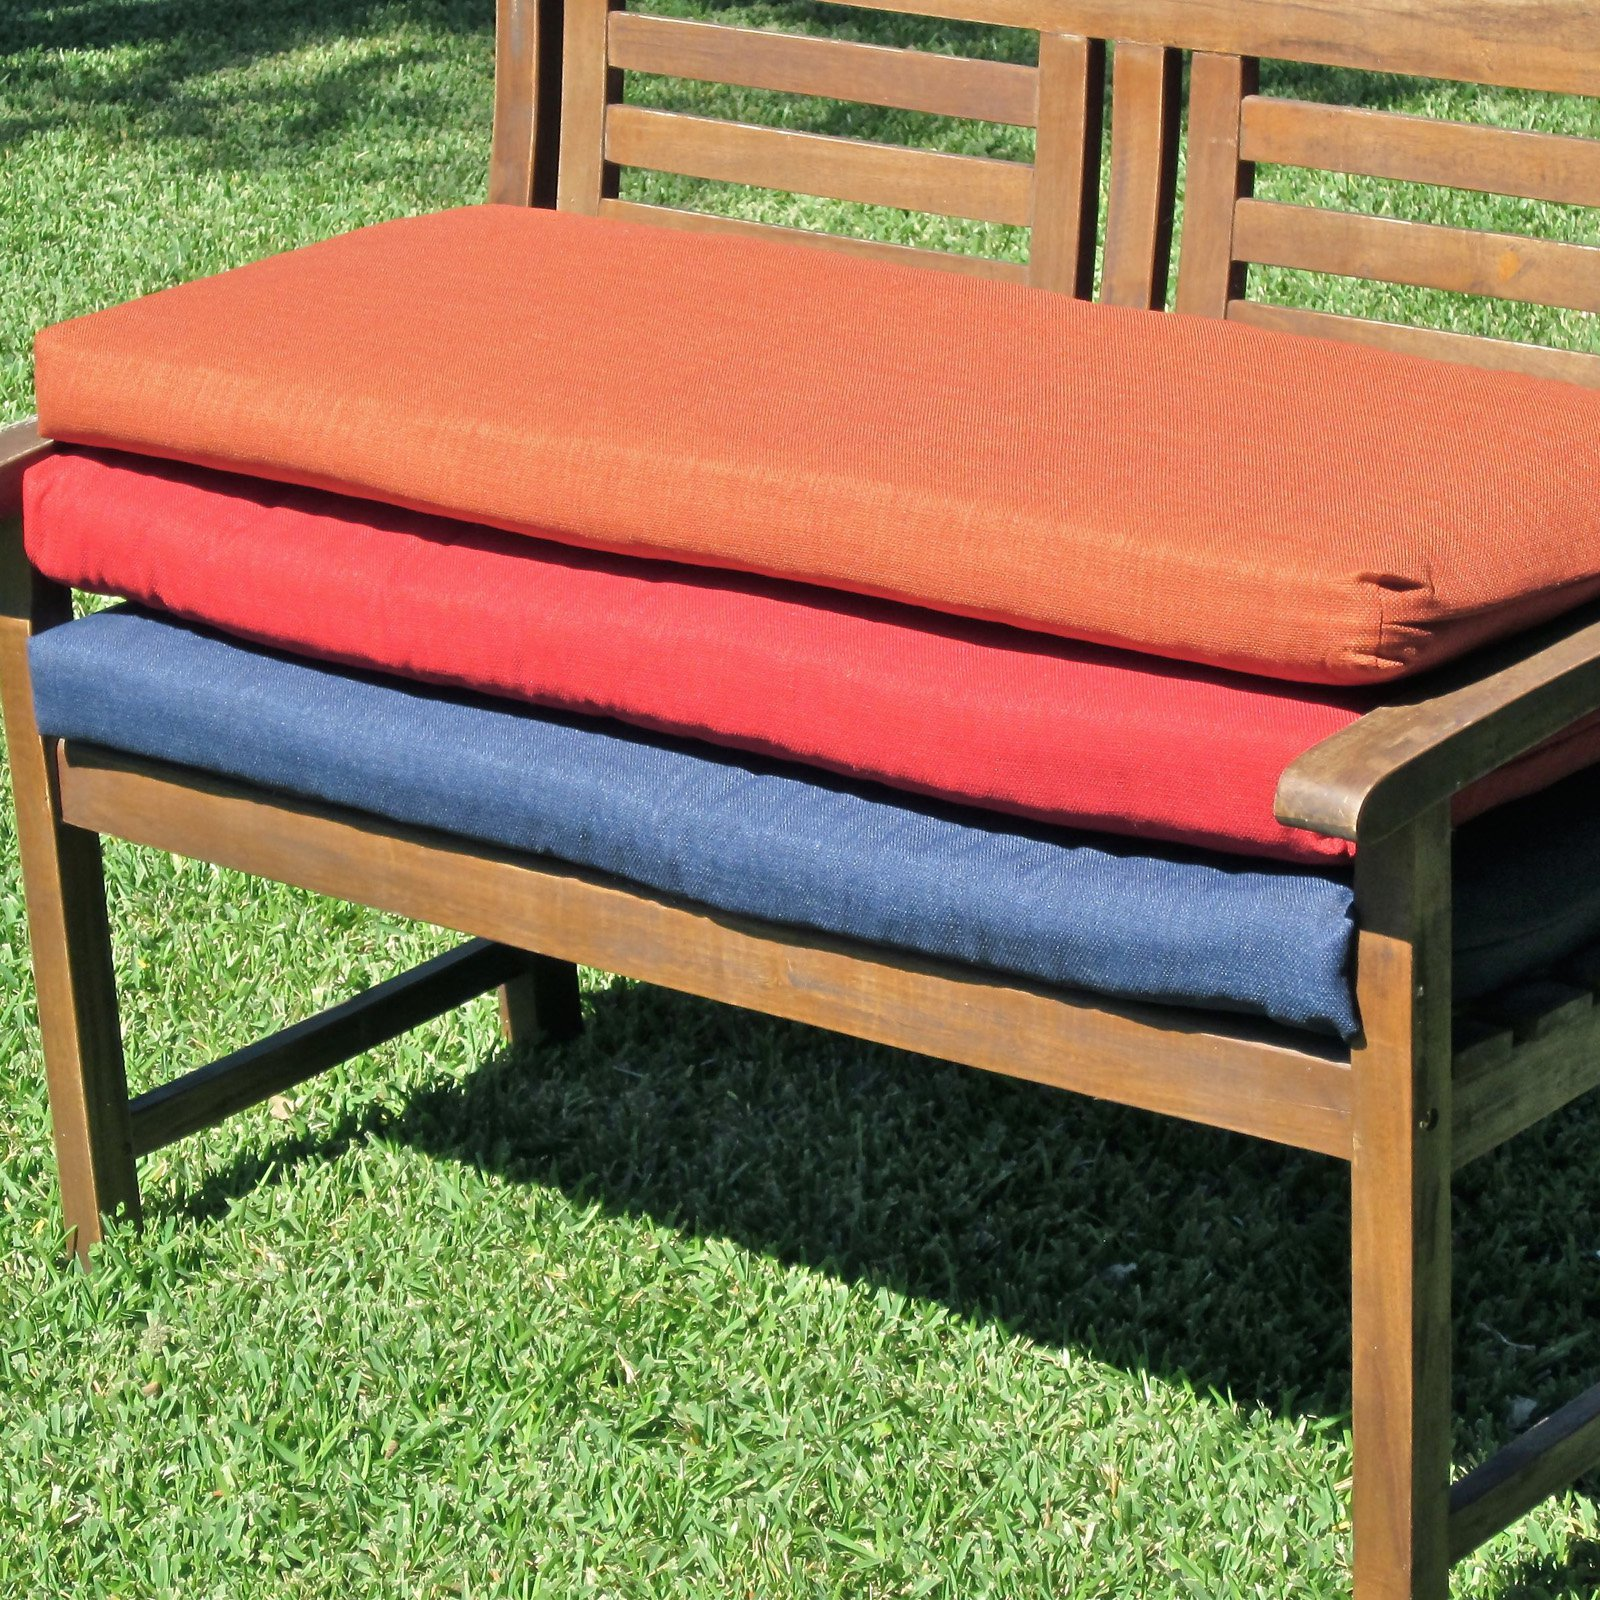 Outdoor Standard Patio Bench Cushion   Walmart.com